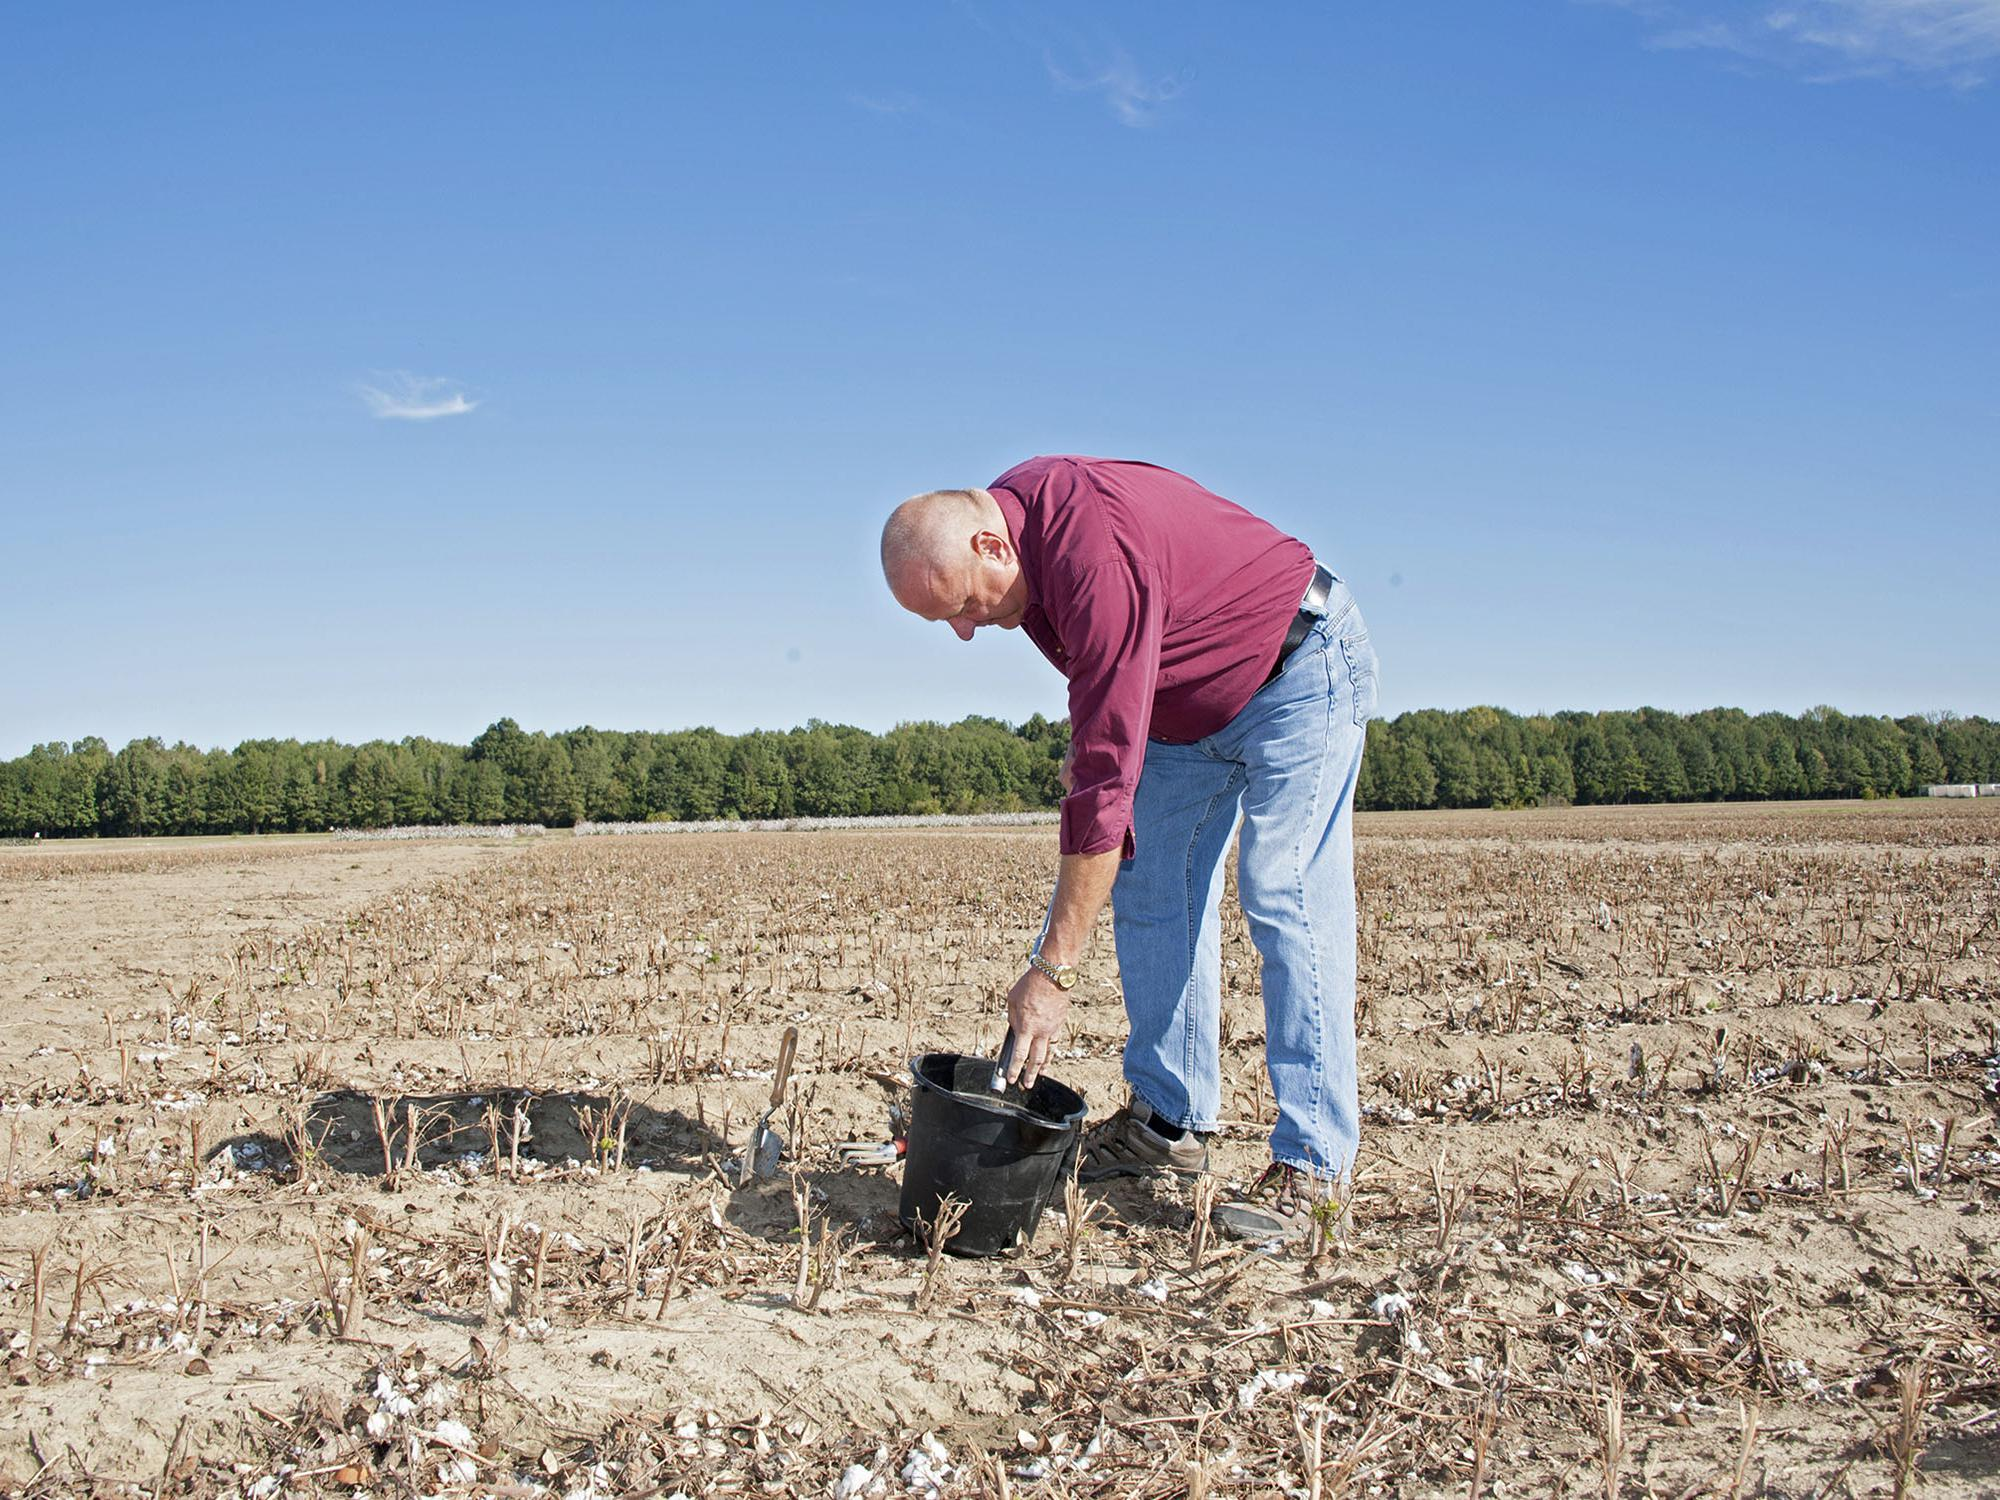 Larry Oldham, Mississippi State University soil specialist, samples soil in a Delta field on Oct. 17, 2014. (Photo by MSU Ag Communications/Kat Lawrence)